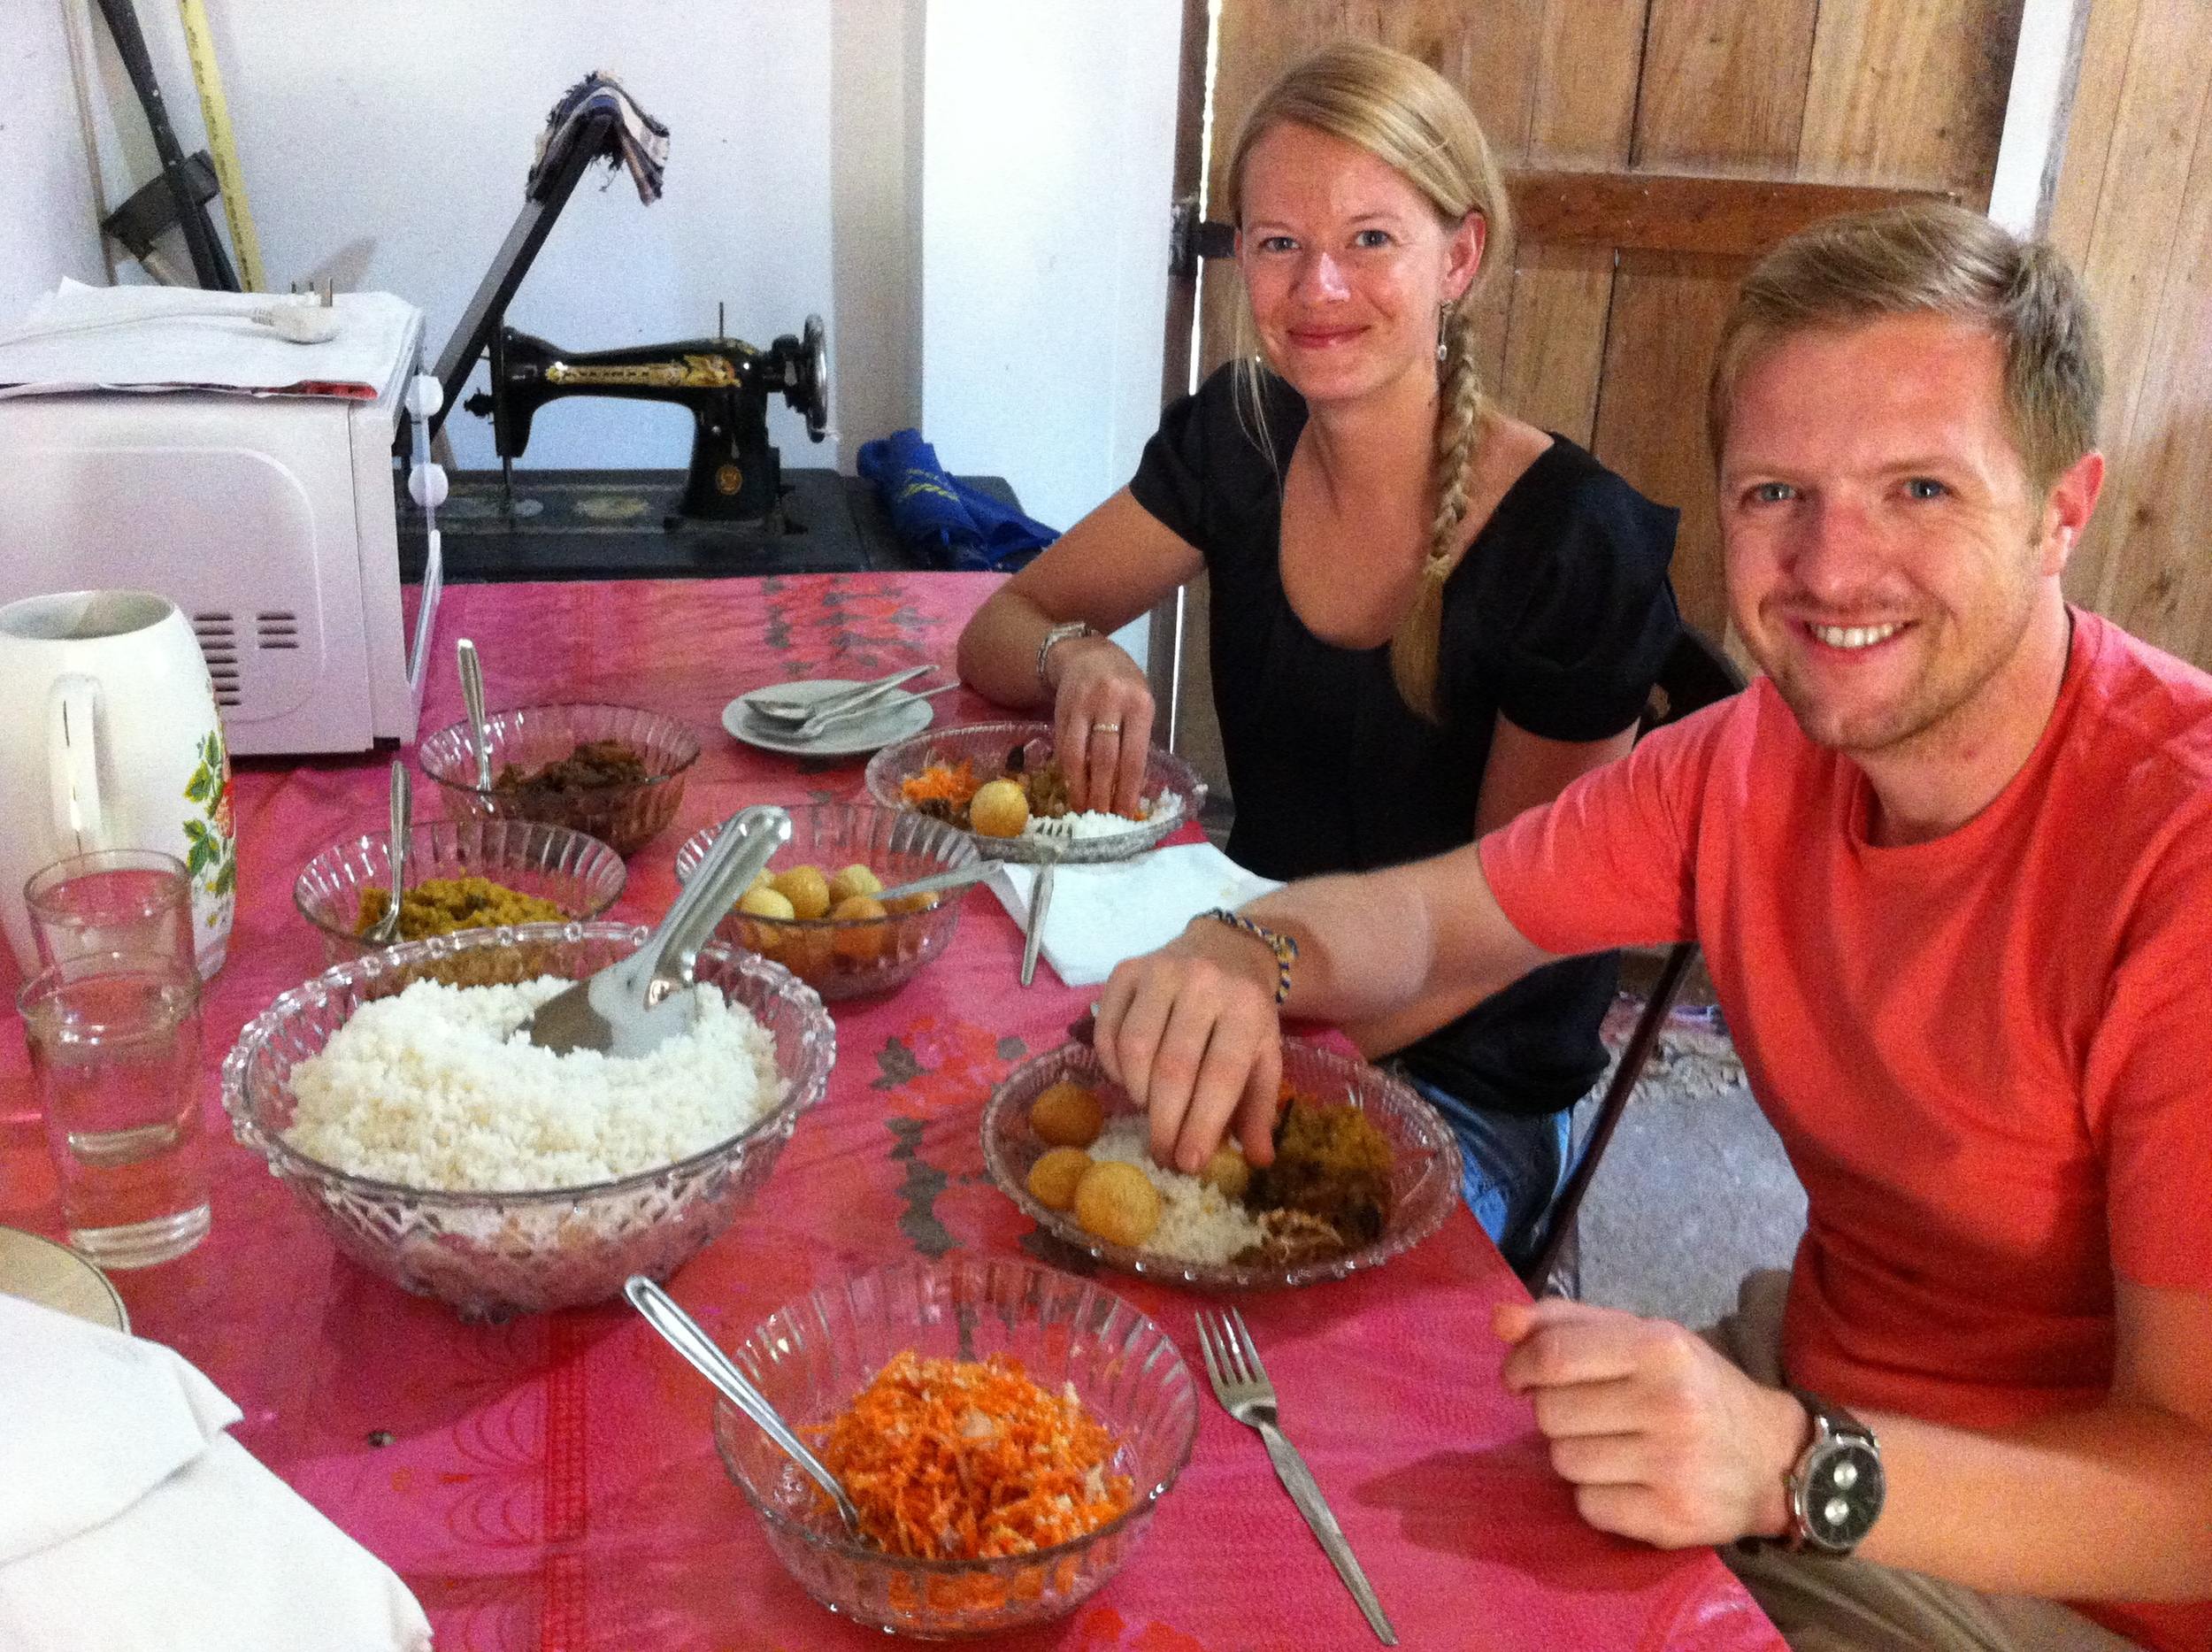 Invite to Paradise founders, and husband and wife, Reece and Claire Turvill in rural Sri Lanka having local rice and curry.